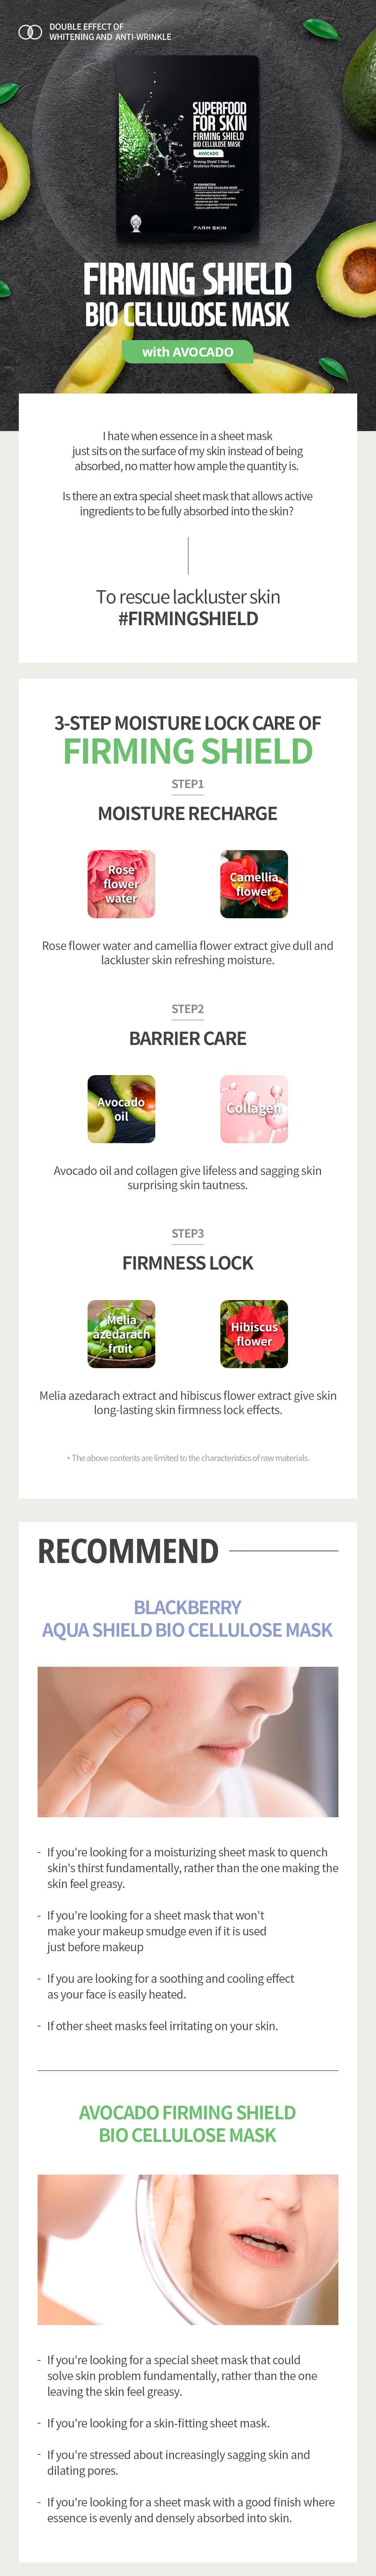 Superfood For Skin Firming Shield Bio Cellulose Mask Avocado